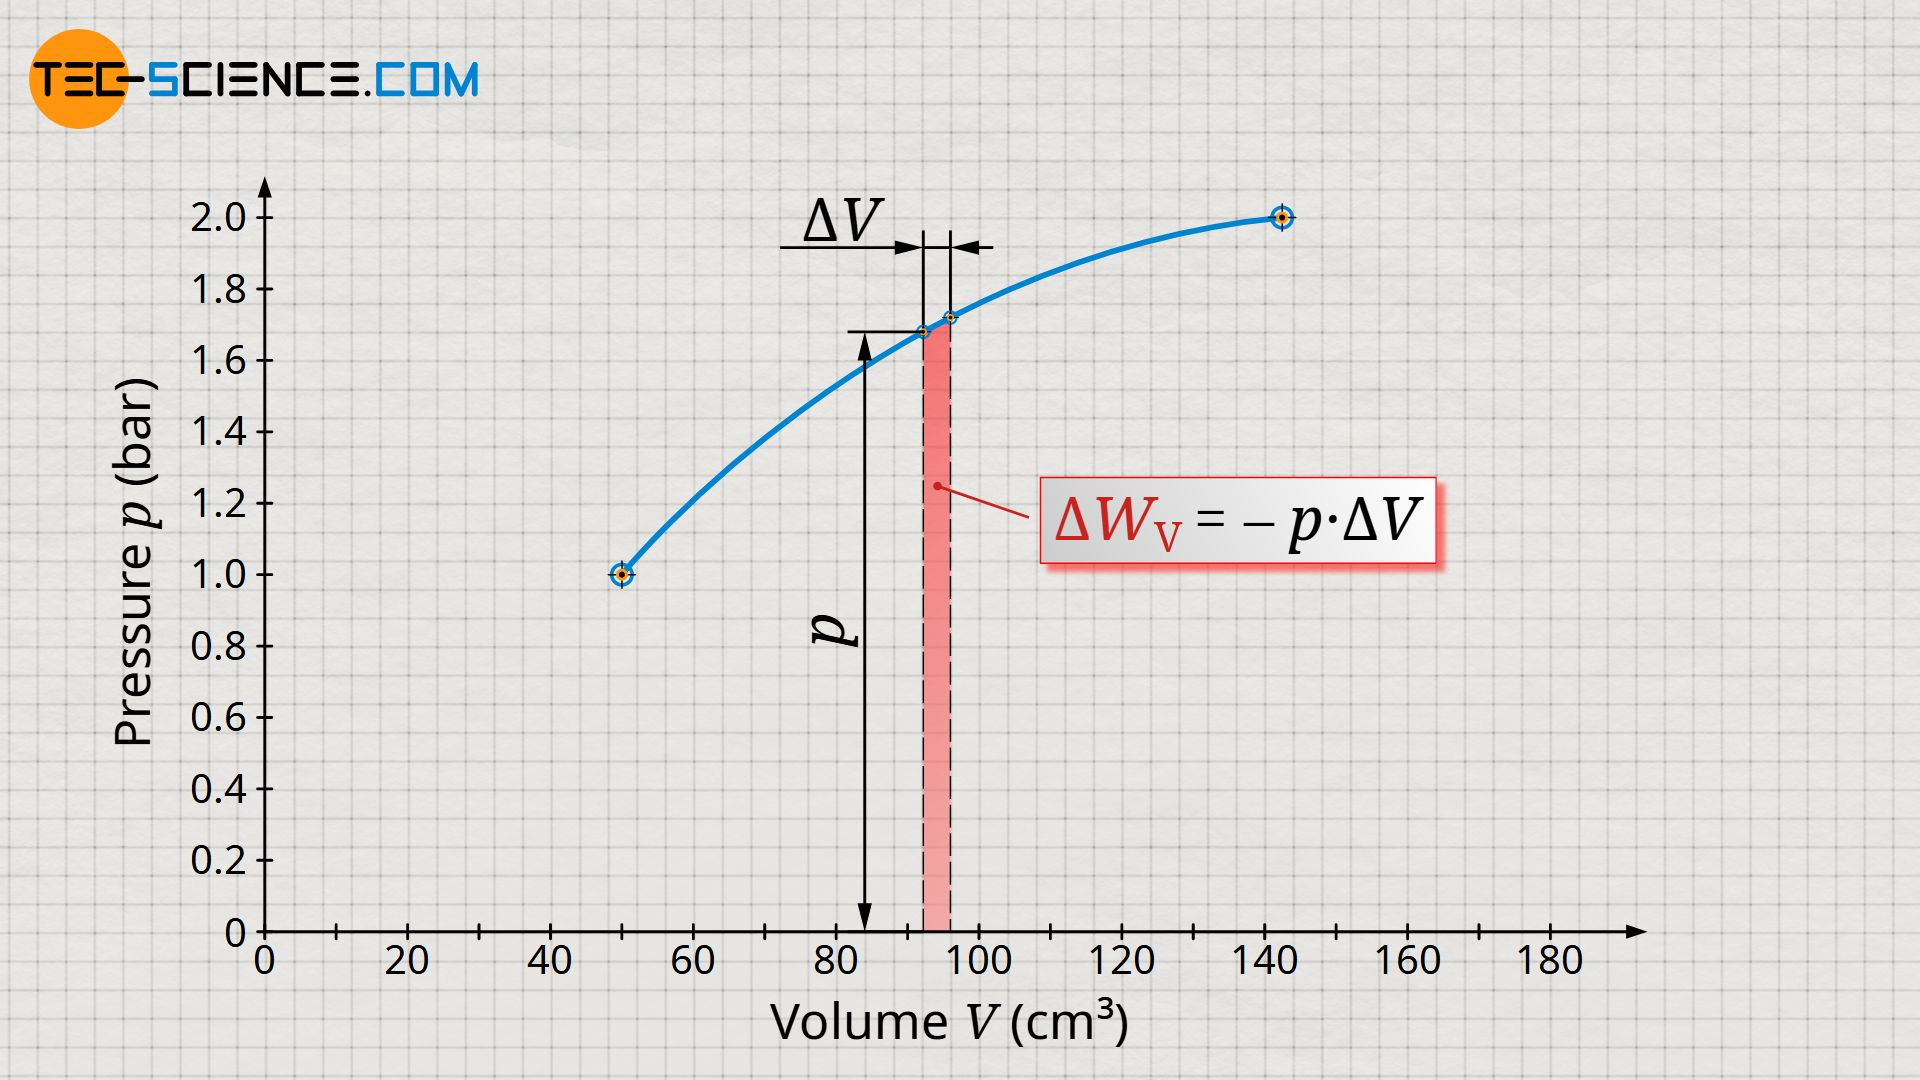 Considering a small change in volume at nearly constant pressure